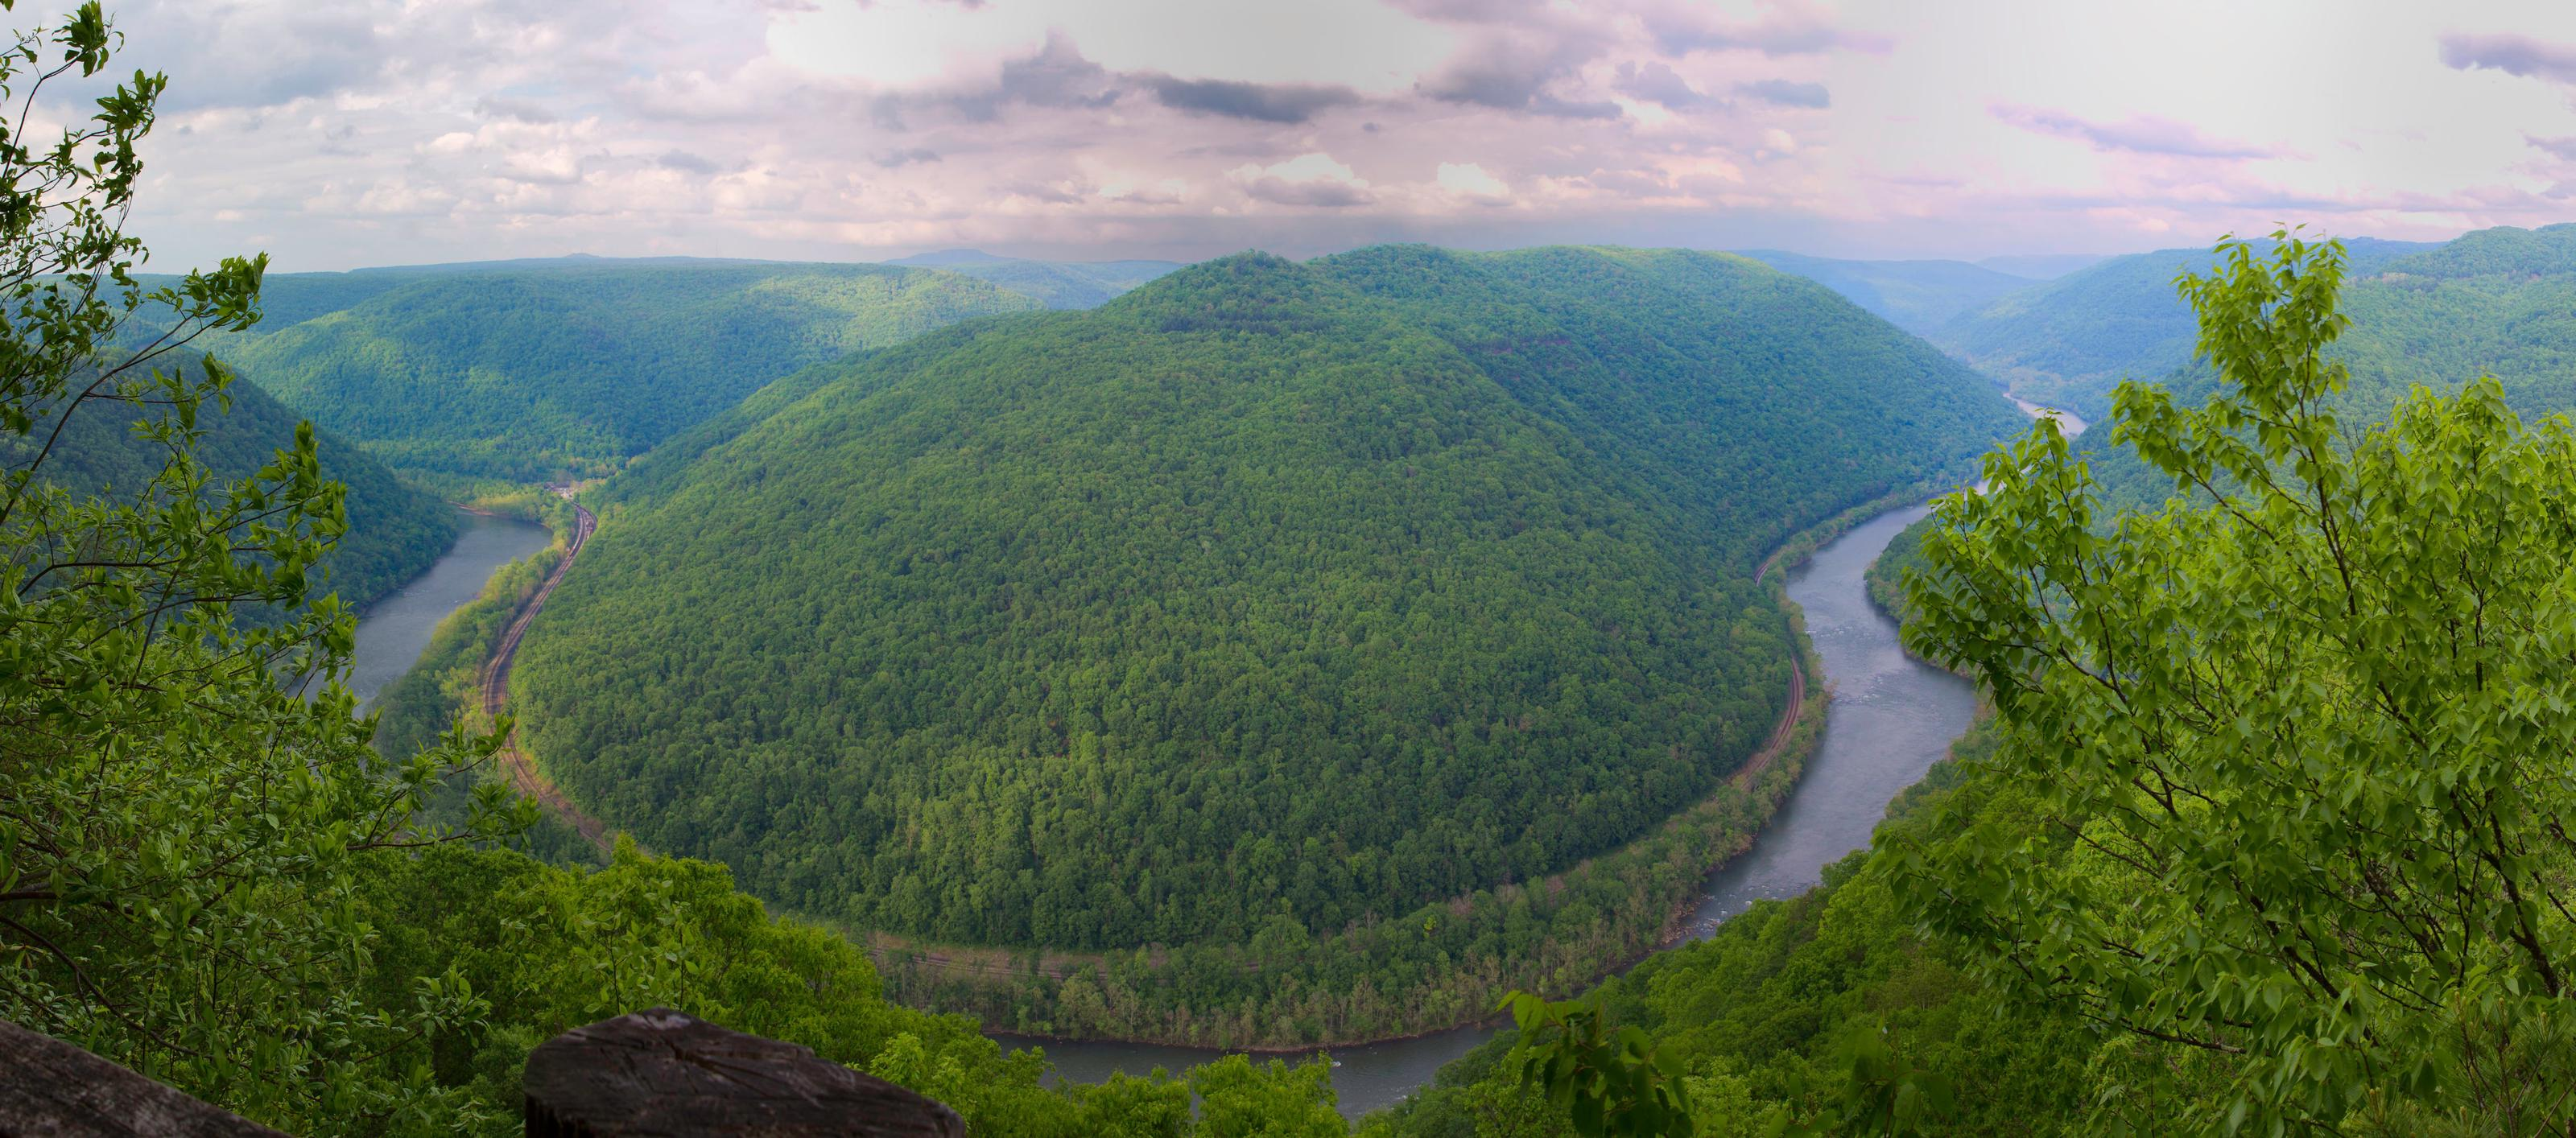 View from Main Overlook at Grandview